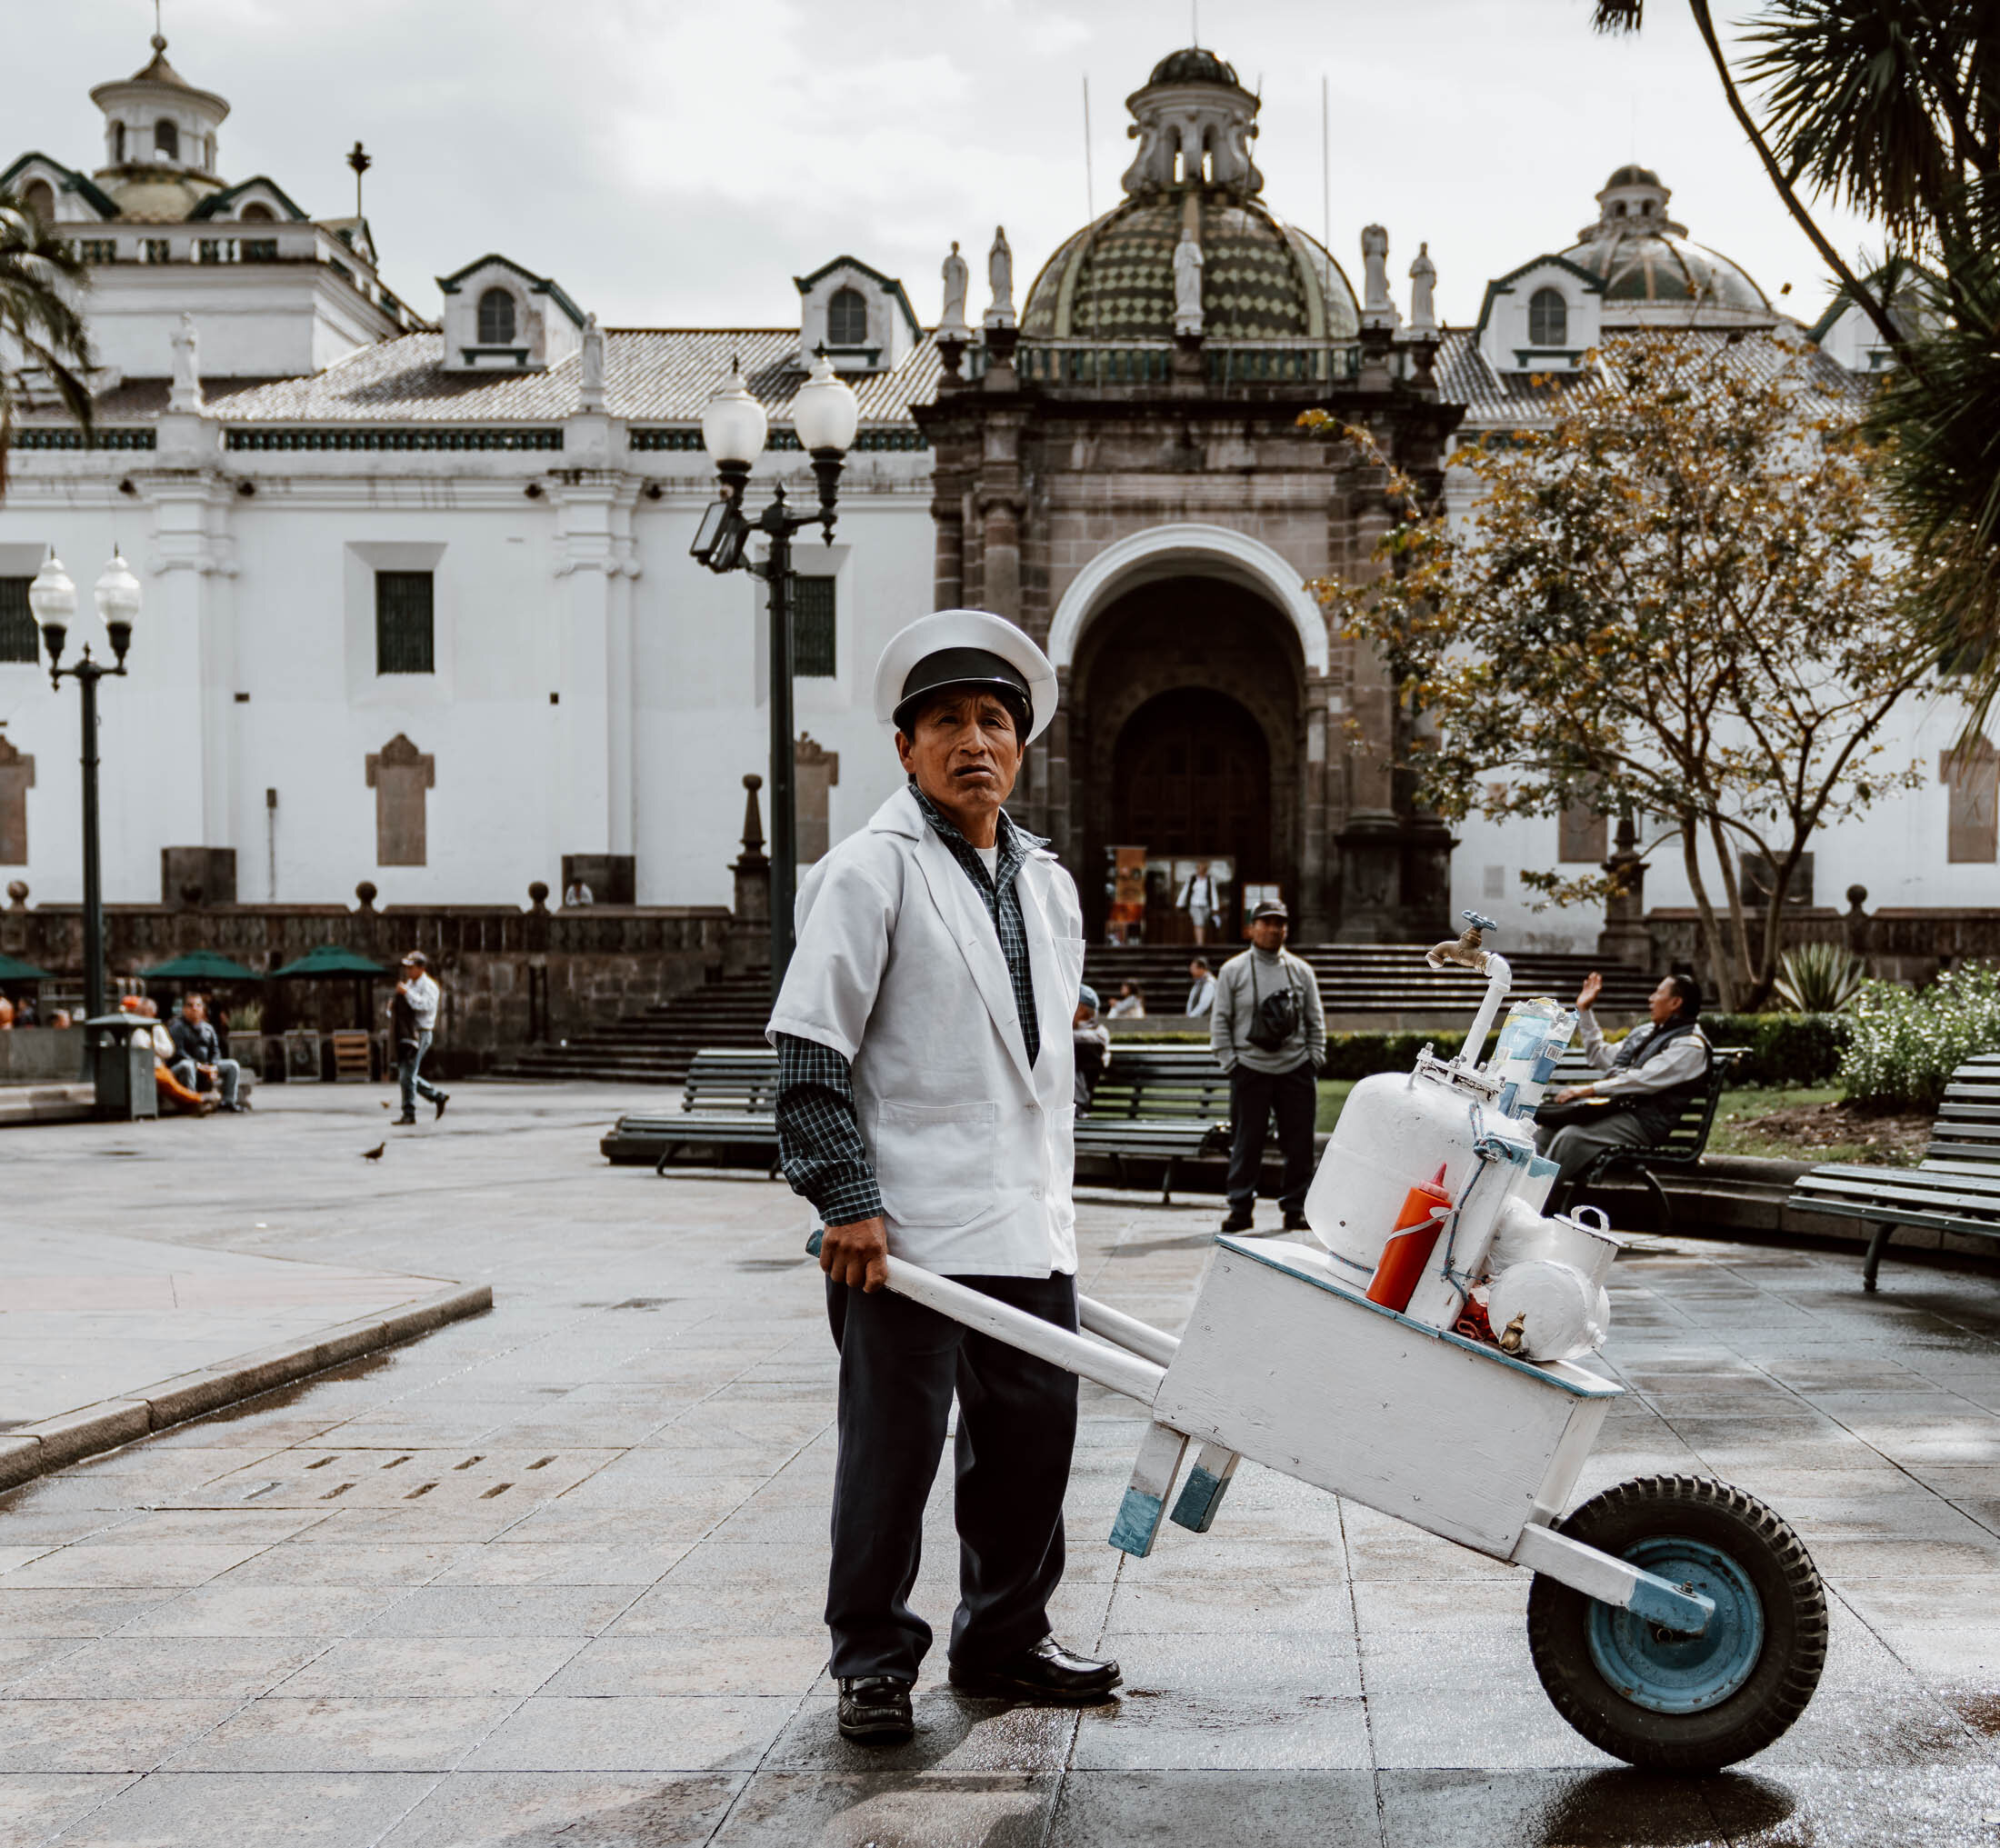 Things to do in Quito - Plaza Grande - Street Photography